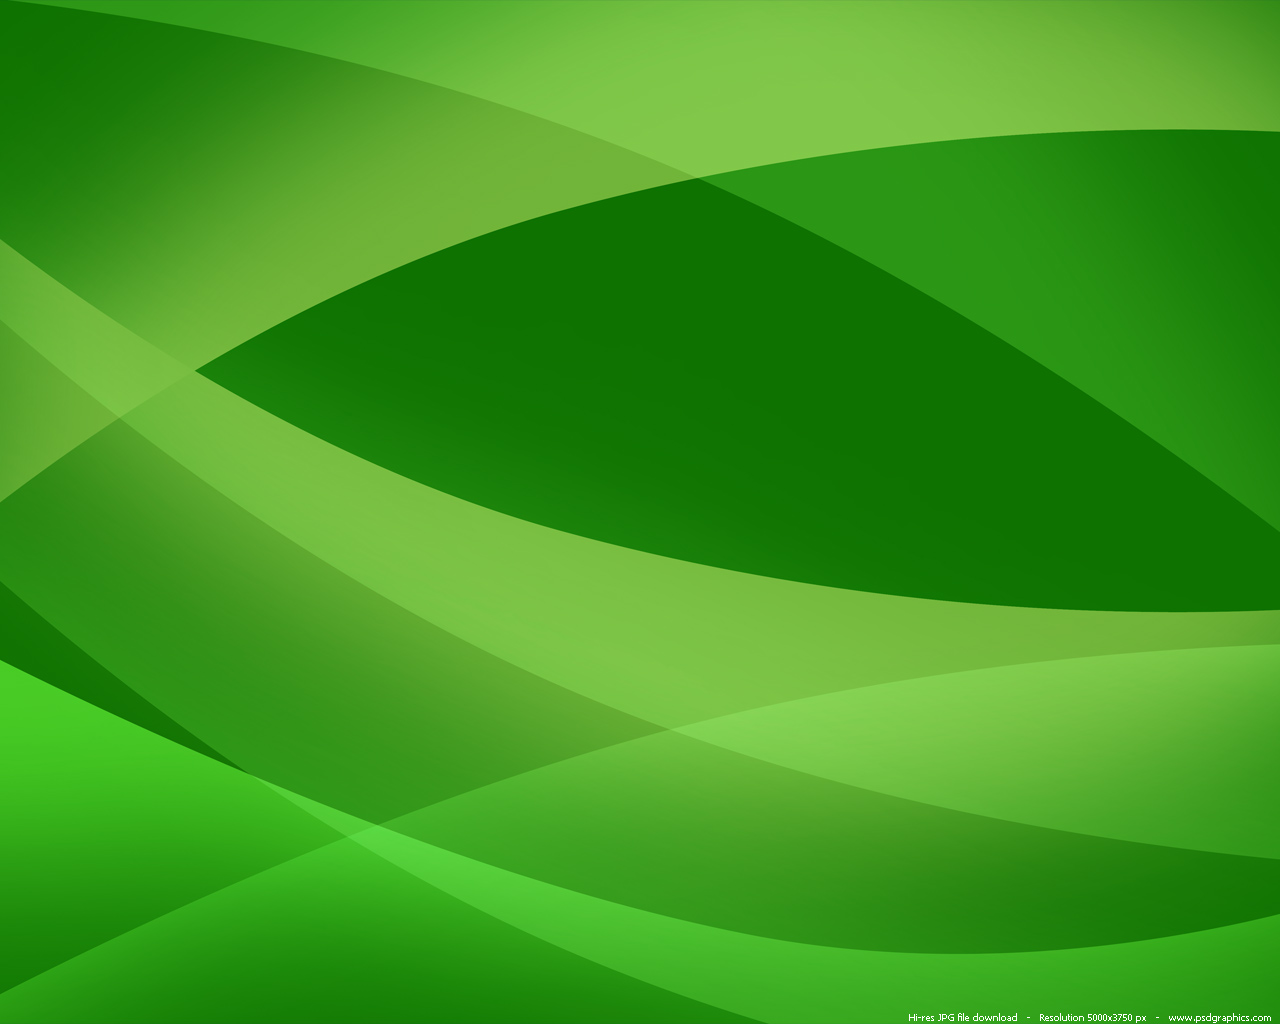 Free Download  HD Green Wallpapers for Windows and Mac Systems 1280x1024